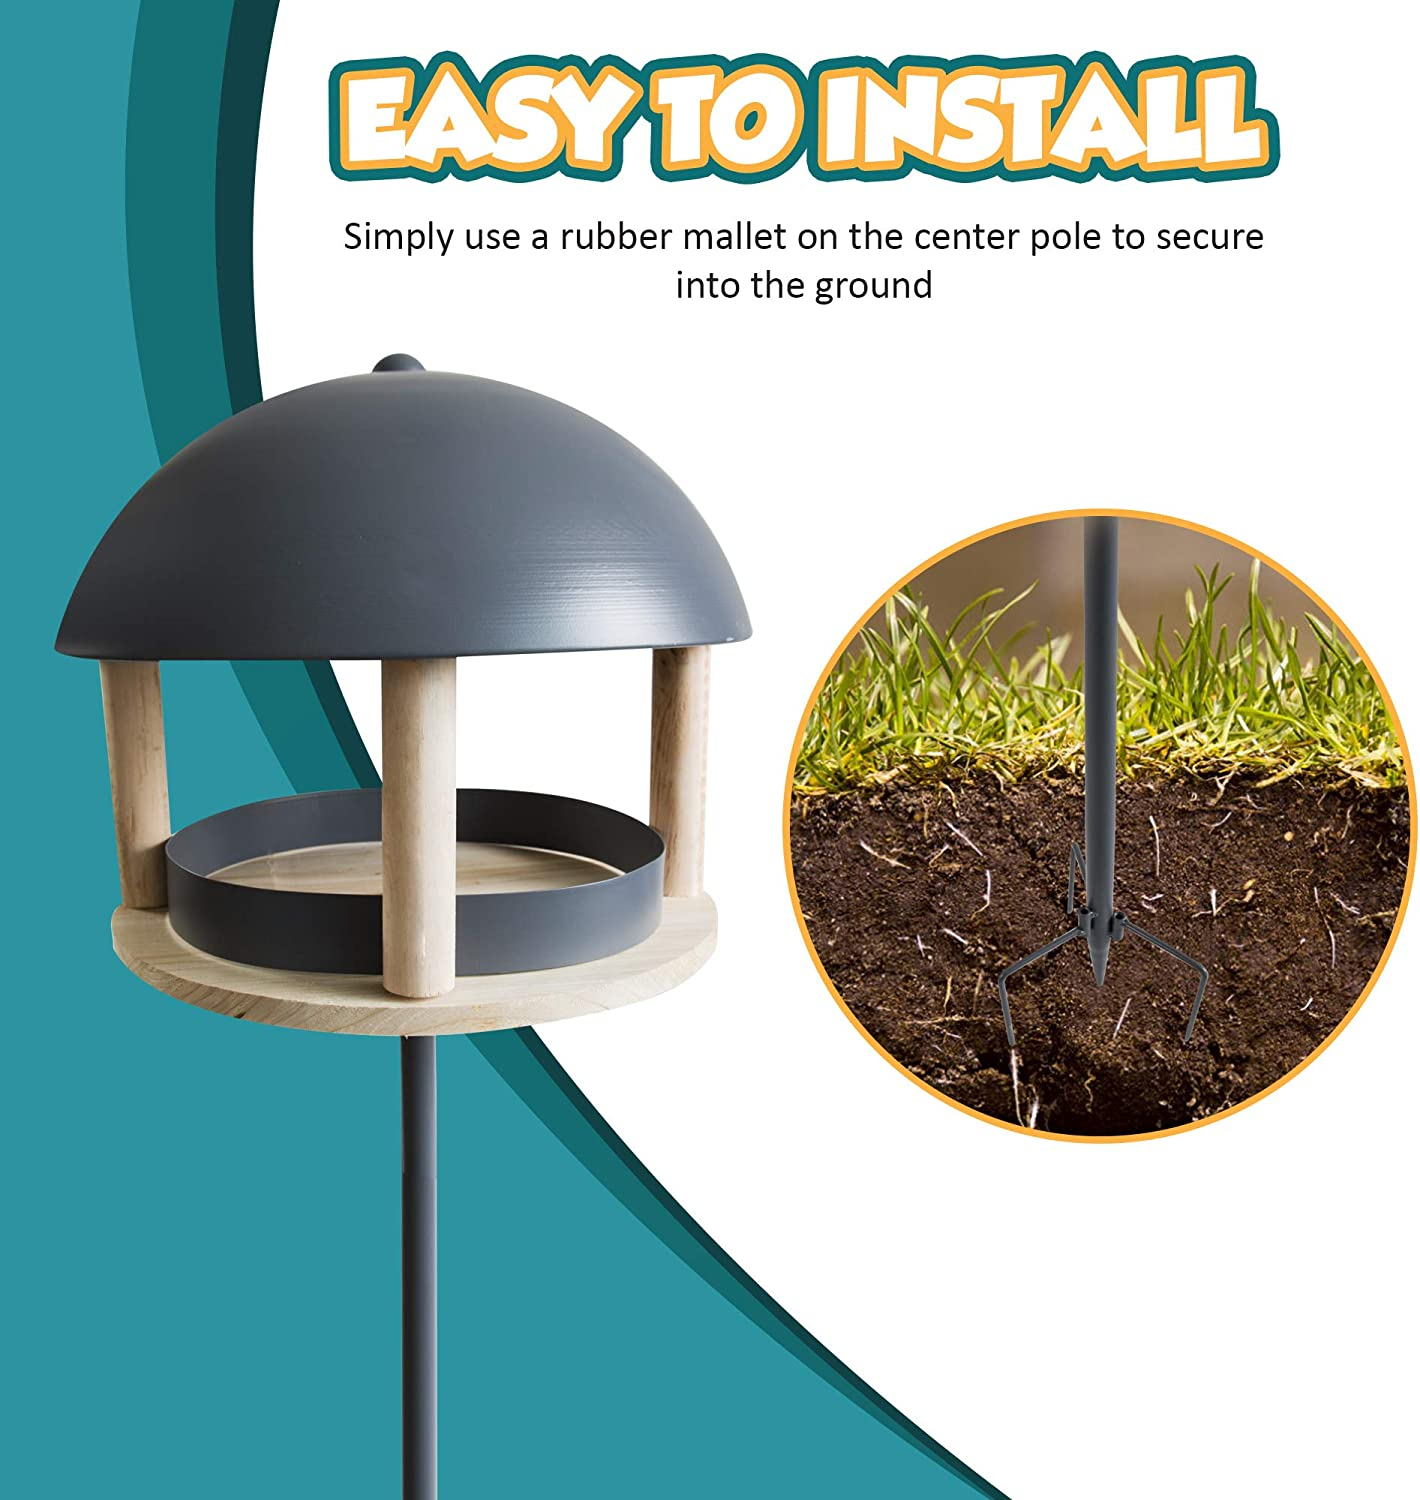 Domed Roof Seed Tray Petlicity Nordic Style Bird House Feeder with Circular Shelf Ground Spikes and Sturdy Metal and Wood Construction